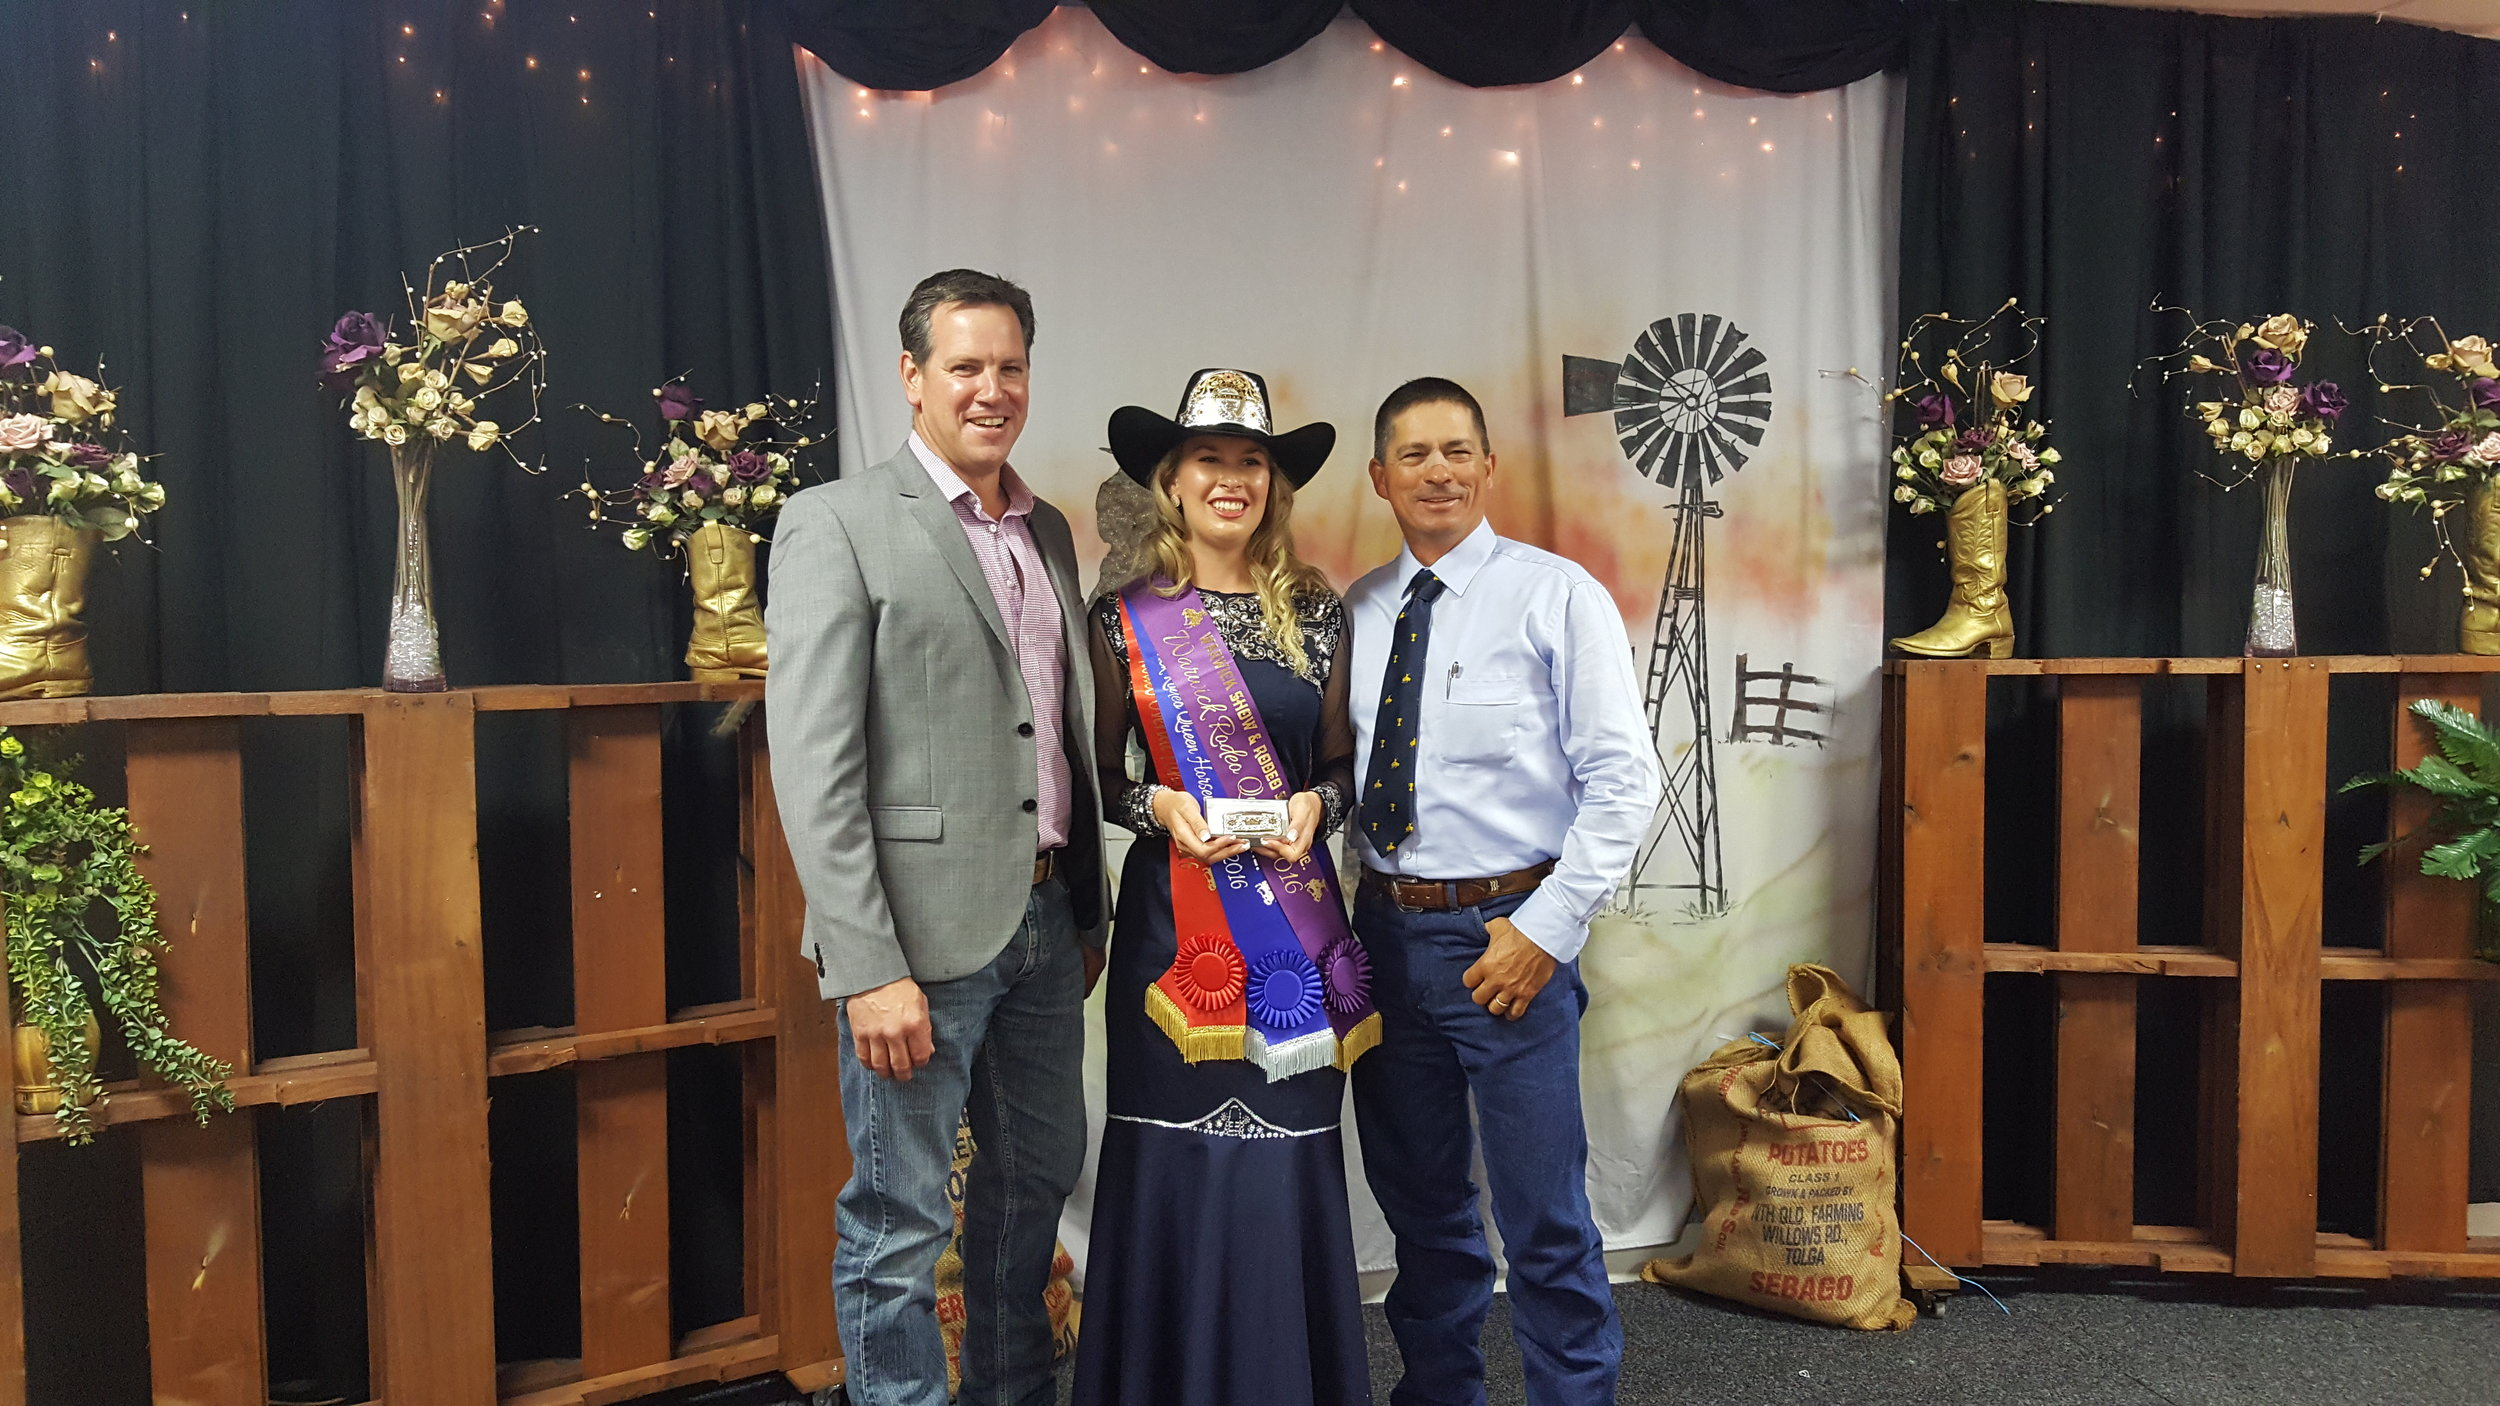 Byron Wolff with the Warwick Rodeo Queen Ashleigh Grant and her Father Geoff Grant